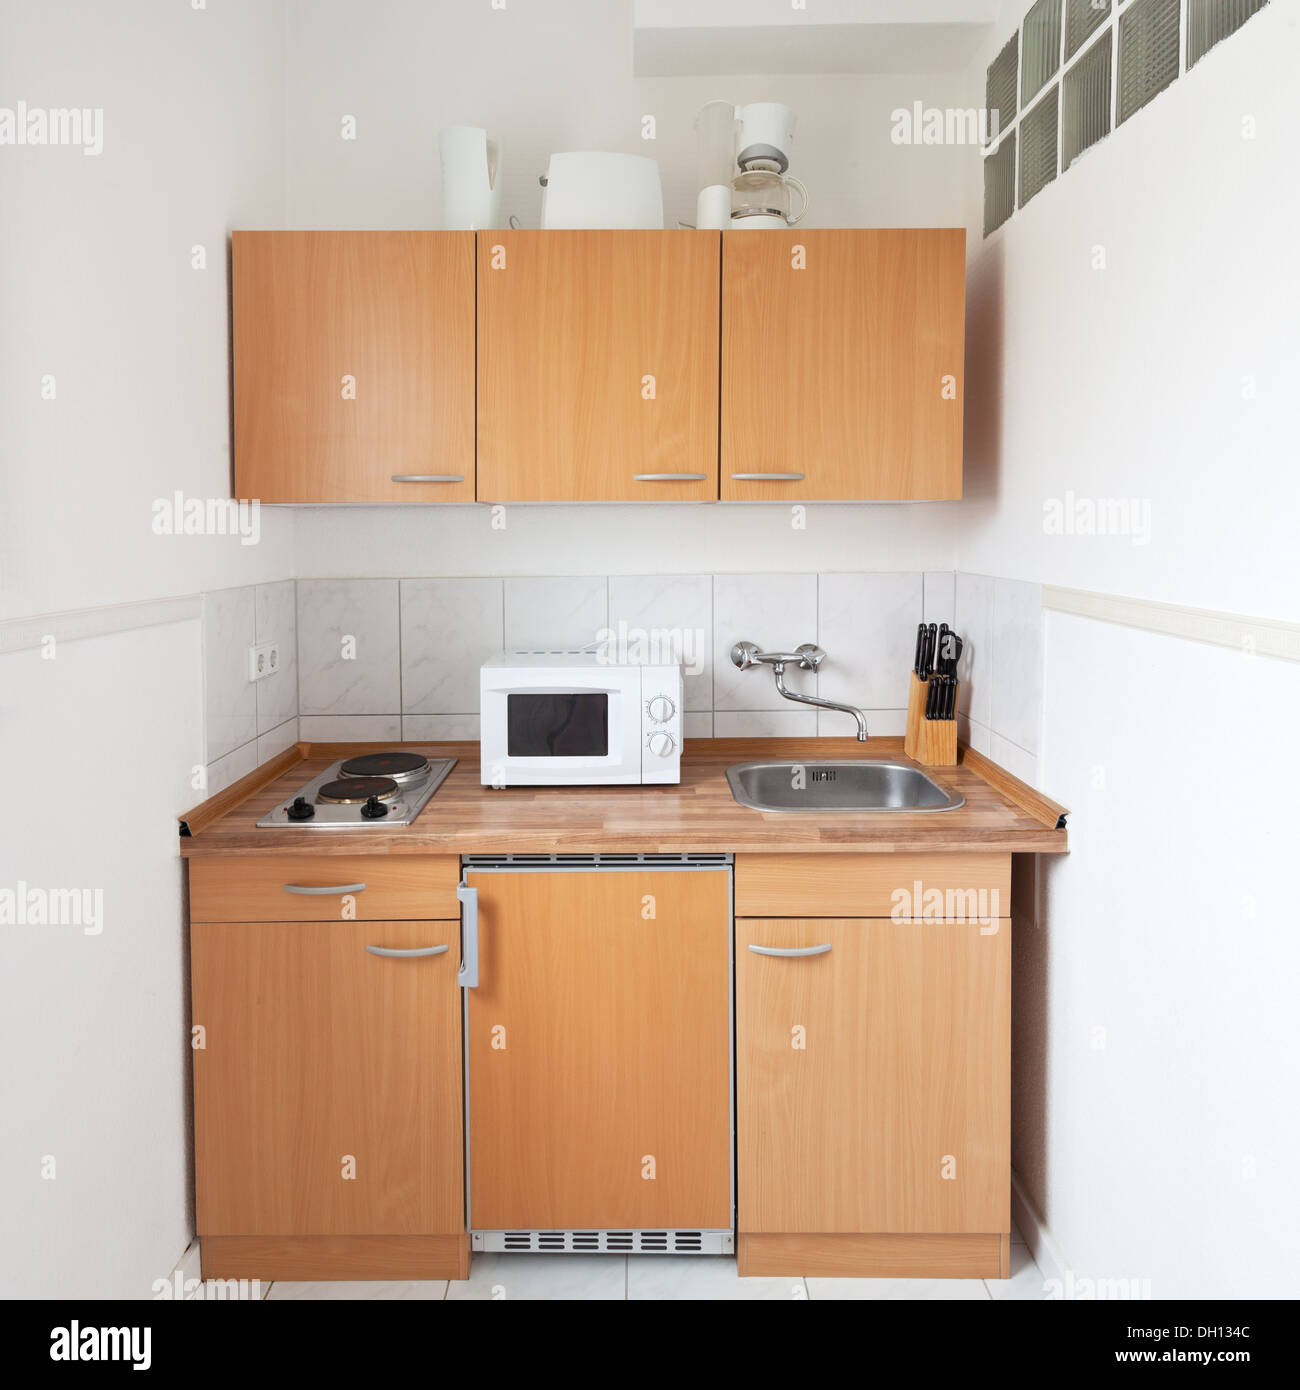 simple kitchen with furniture set and kitchen equipment ...